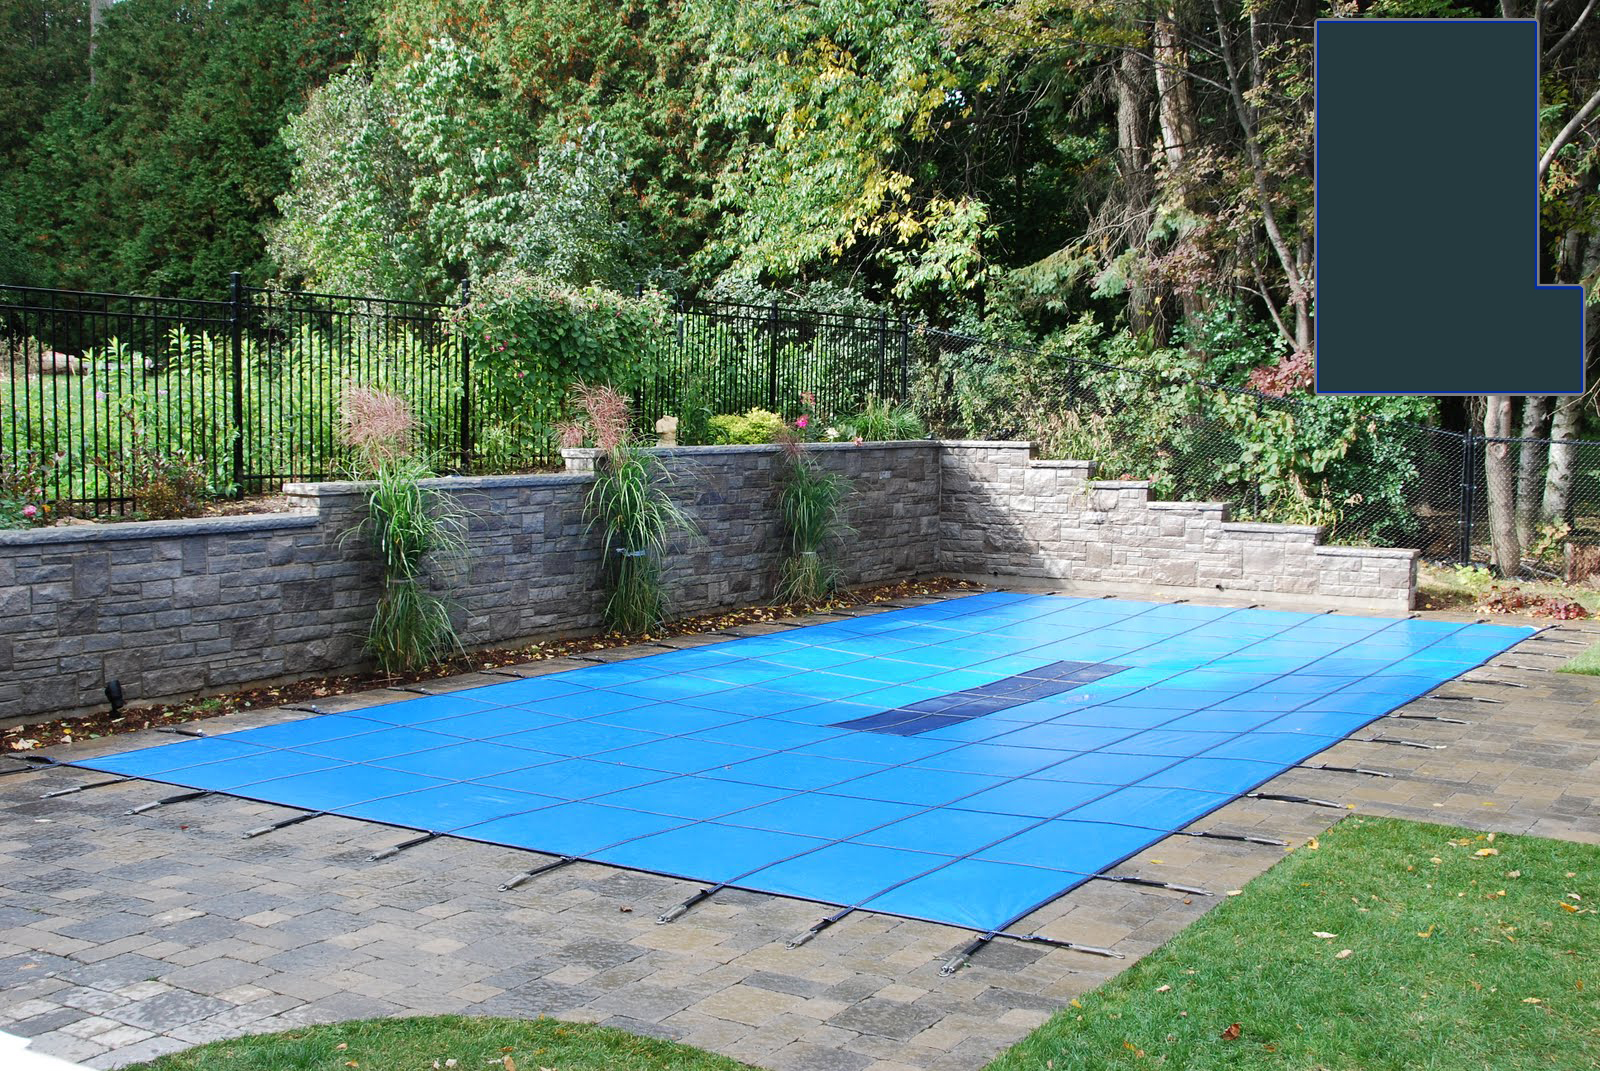 20 yr solid safety cover w pump for 12 39 x 24 39 rectangle for 16x32 pool design